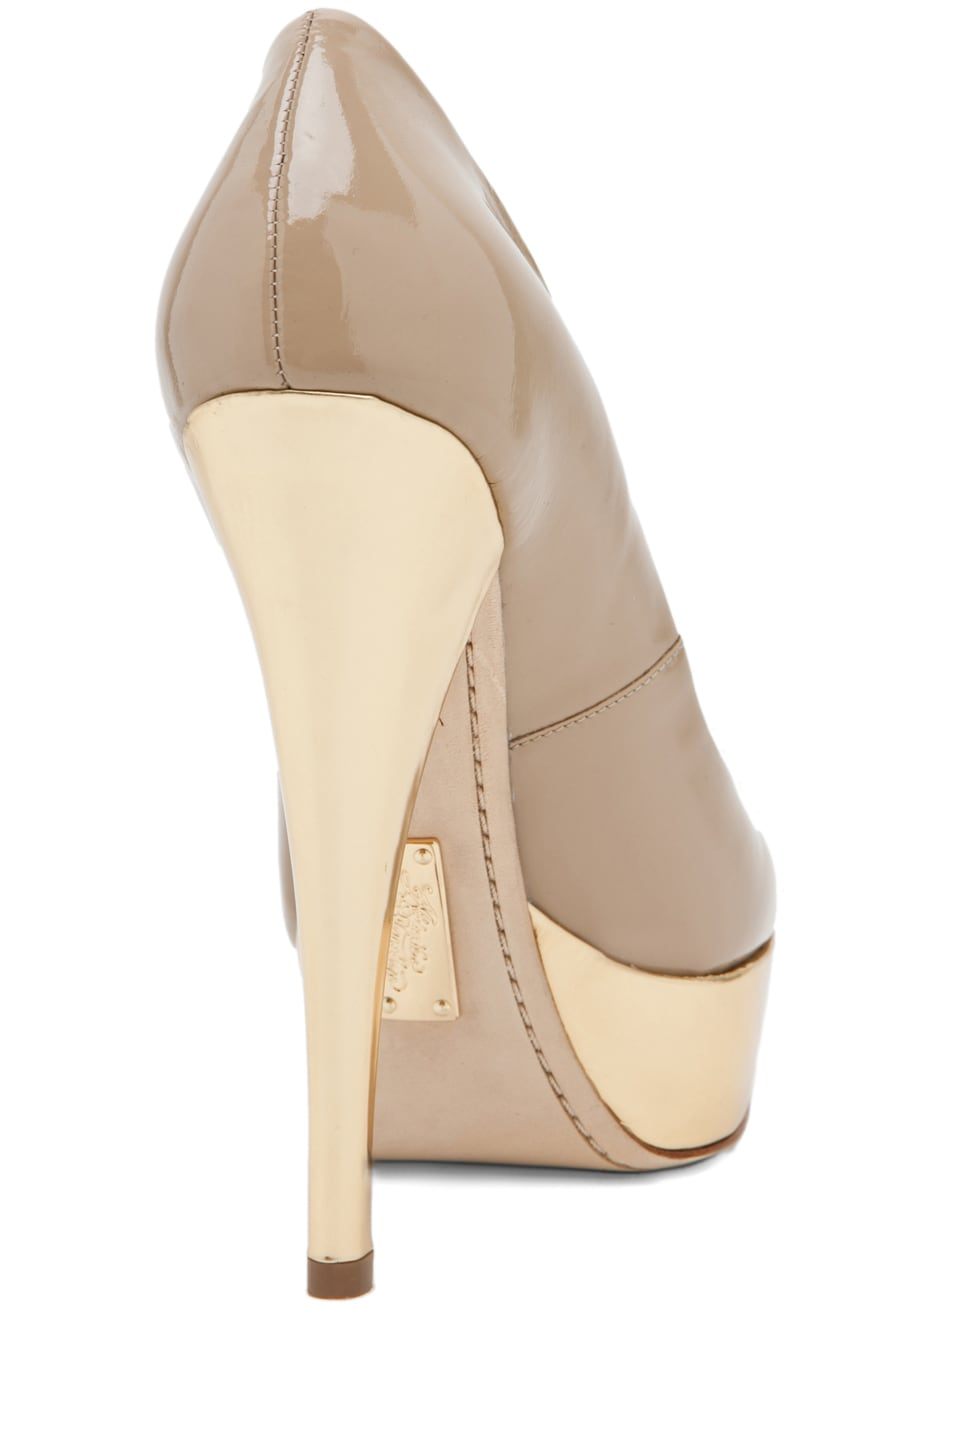 Image 3 of Alejandro Ingelmo Sophia Pump in Sand/Gold